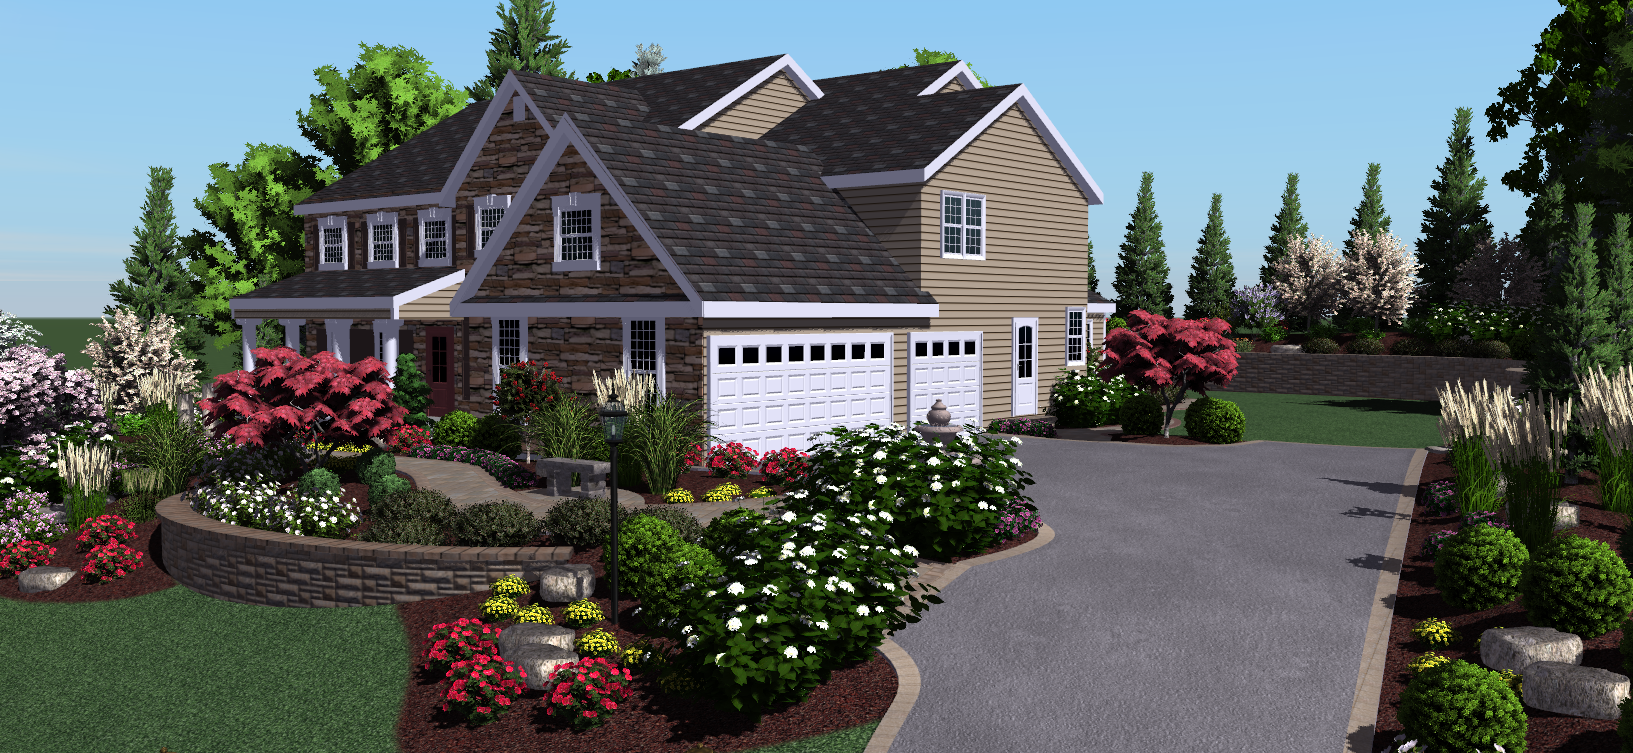 Visionscape Takes Professional 3d Landscape Design Software Social